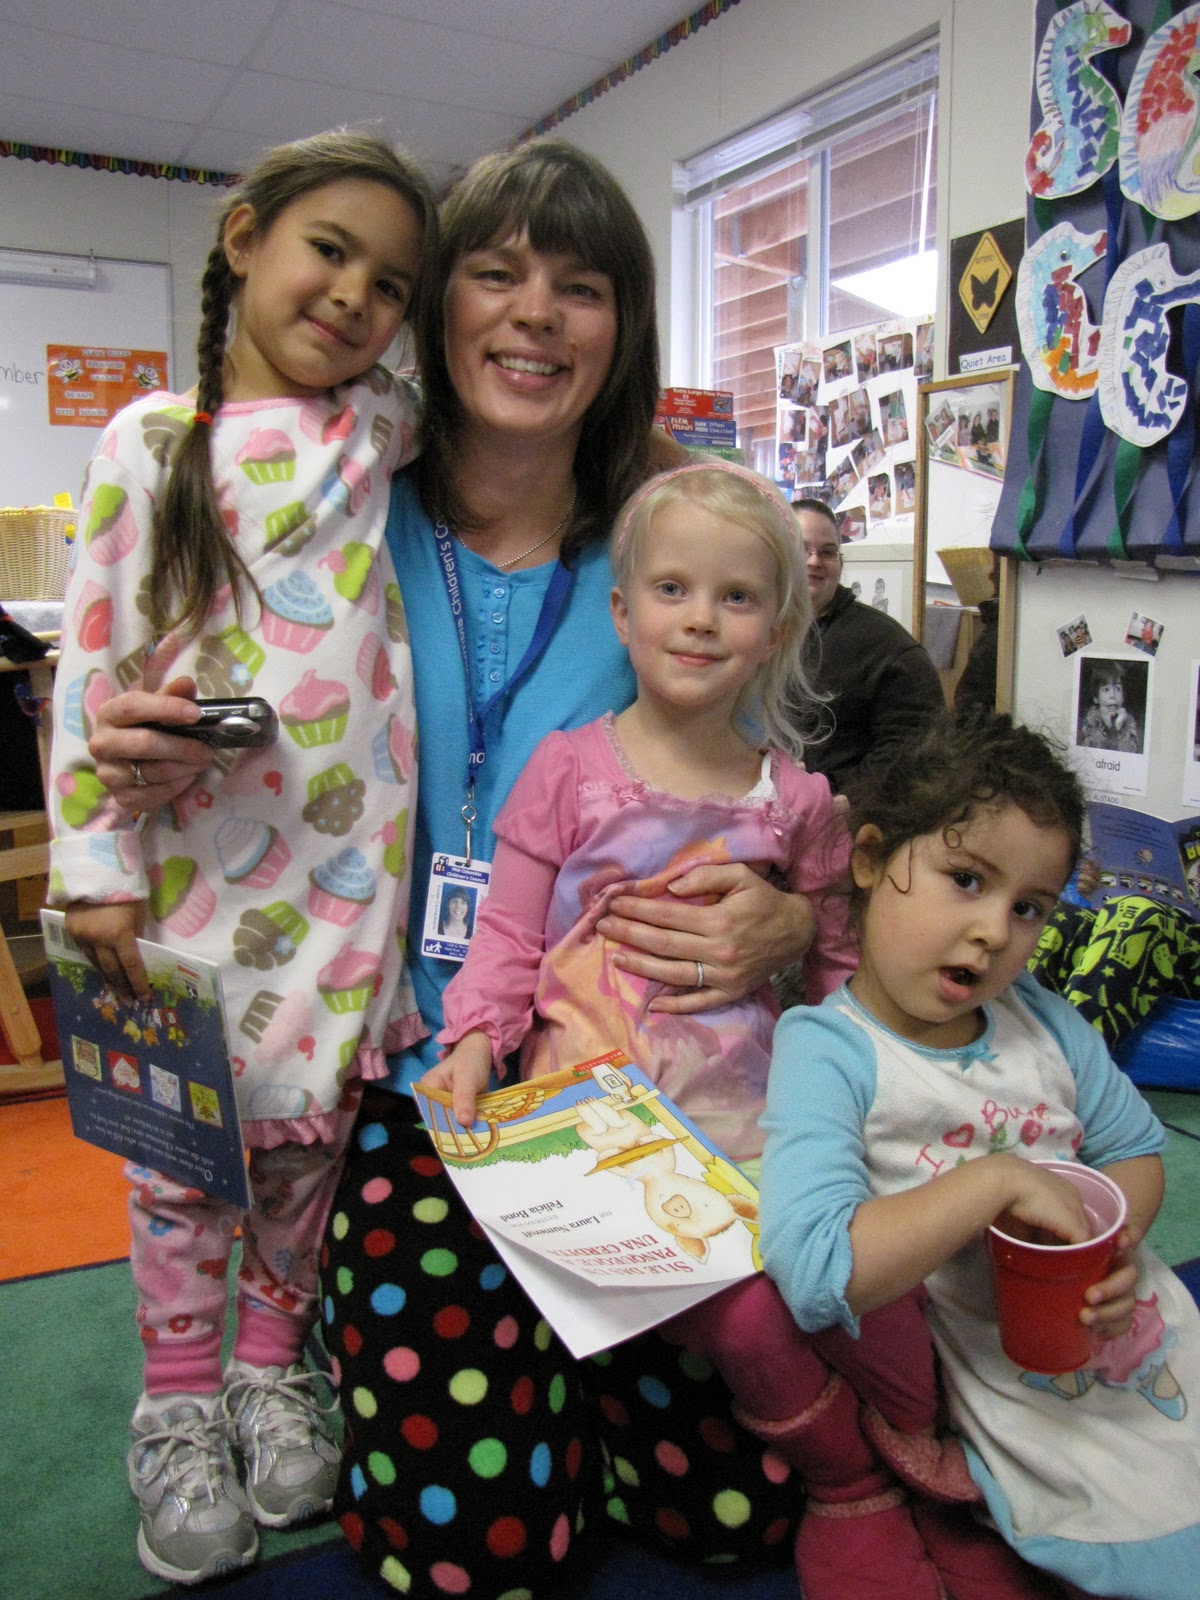 At Whit S End Preschool Pajama Party